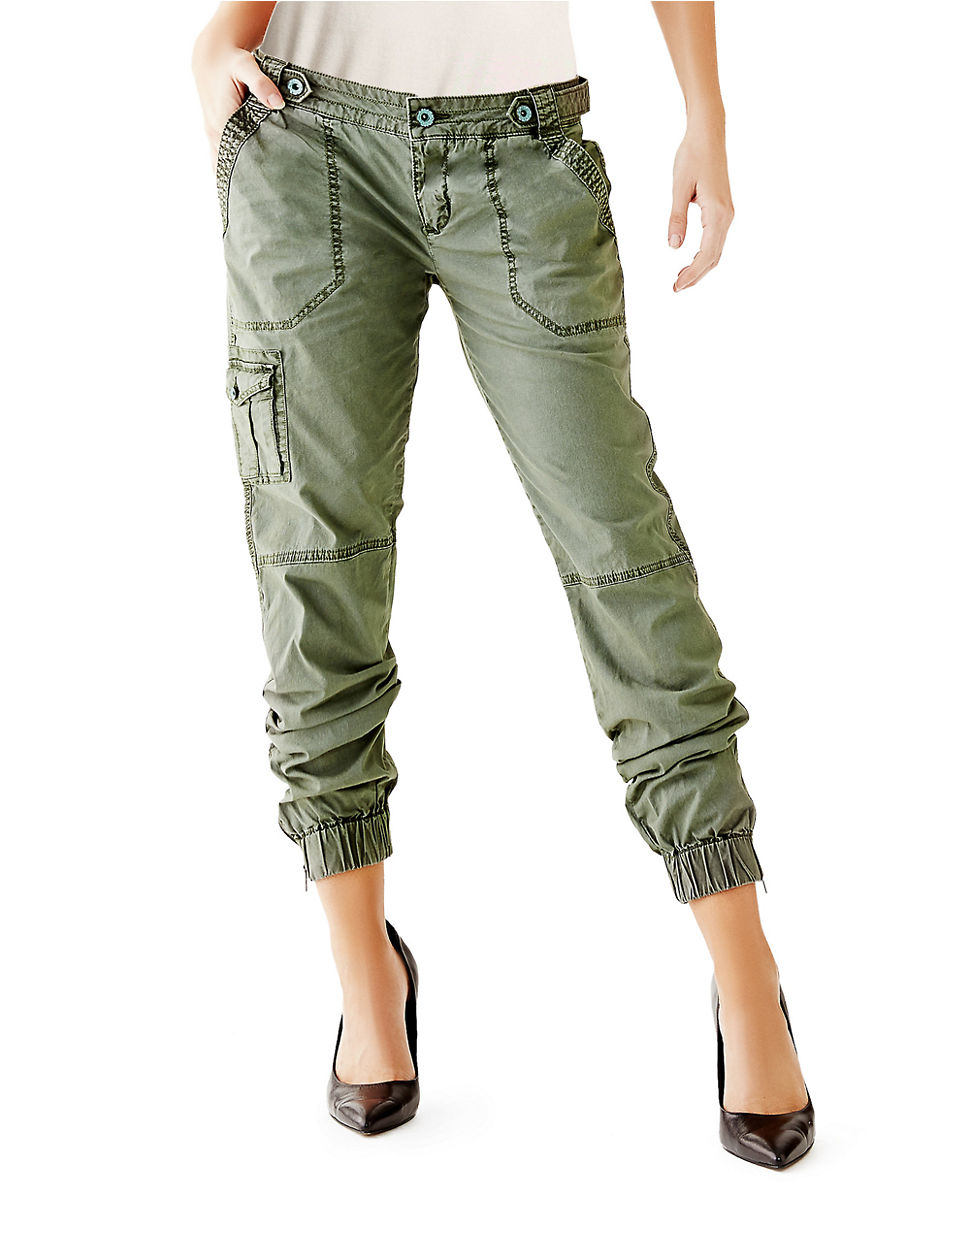 Popular New Fashion Women39s Army Green Cargo Pants Casual Trousers Outdoor